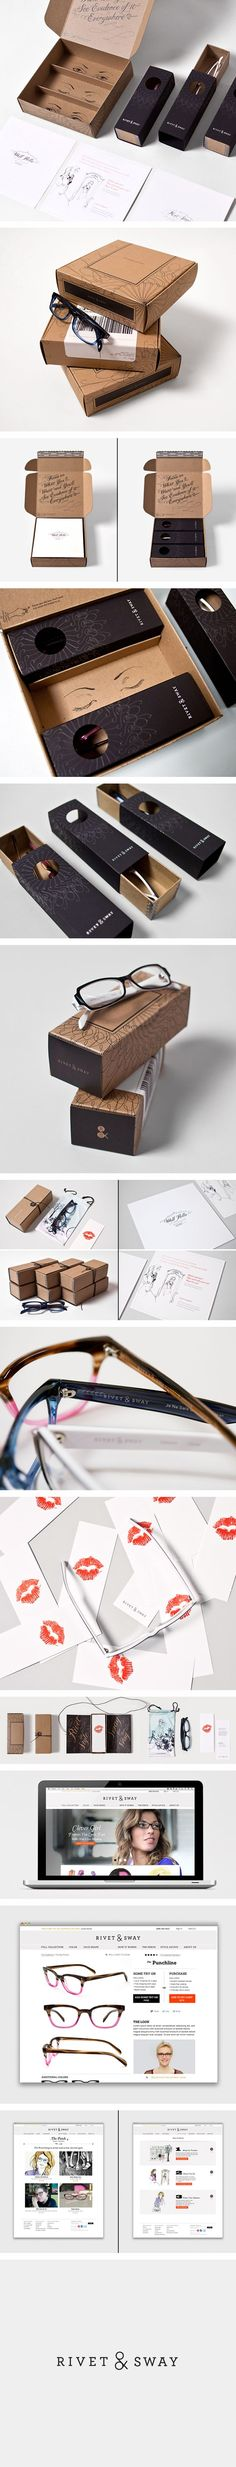 Rivet & Sway | YIU Studio PD